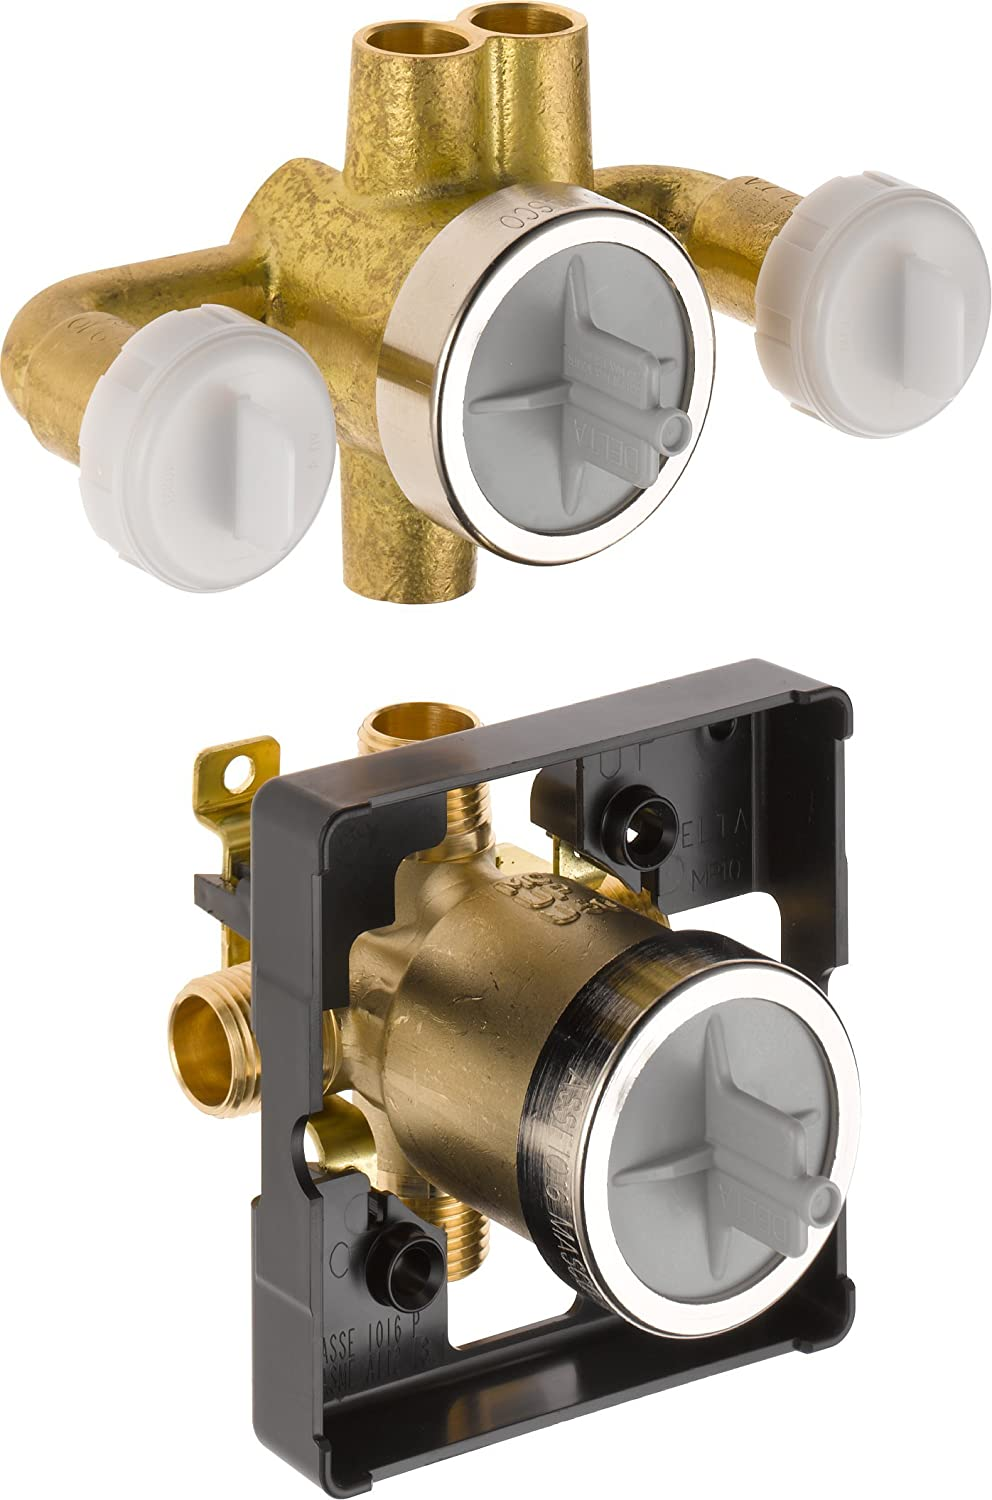 Delta R18000-XO Jetted Shower Rough-In Valve with Extra Outlet 6 ...